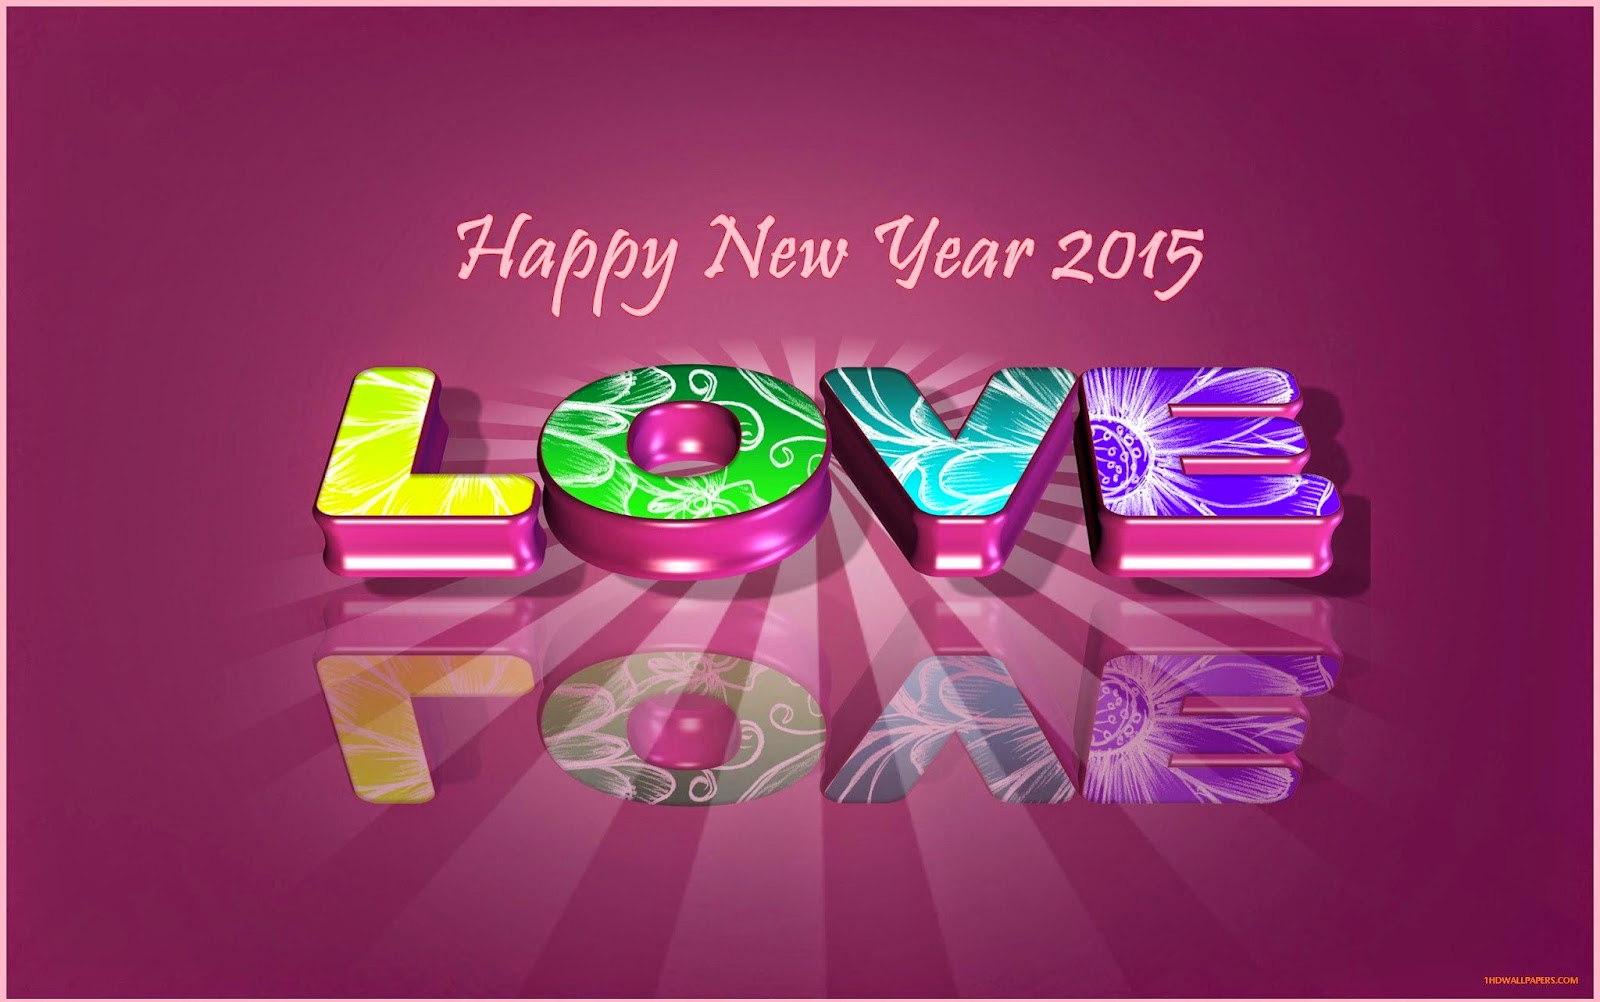 Happy New Year 2015 WhatsApp Images and Pictures   Happy New Year ...